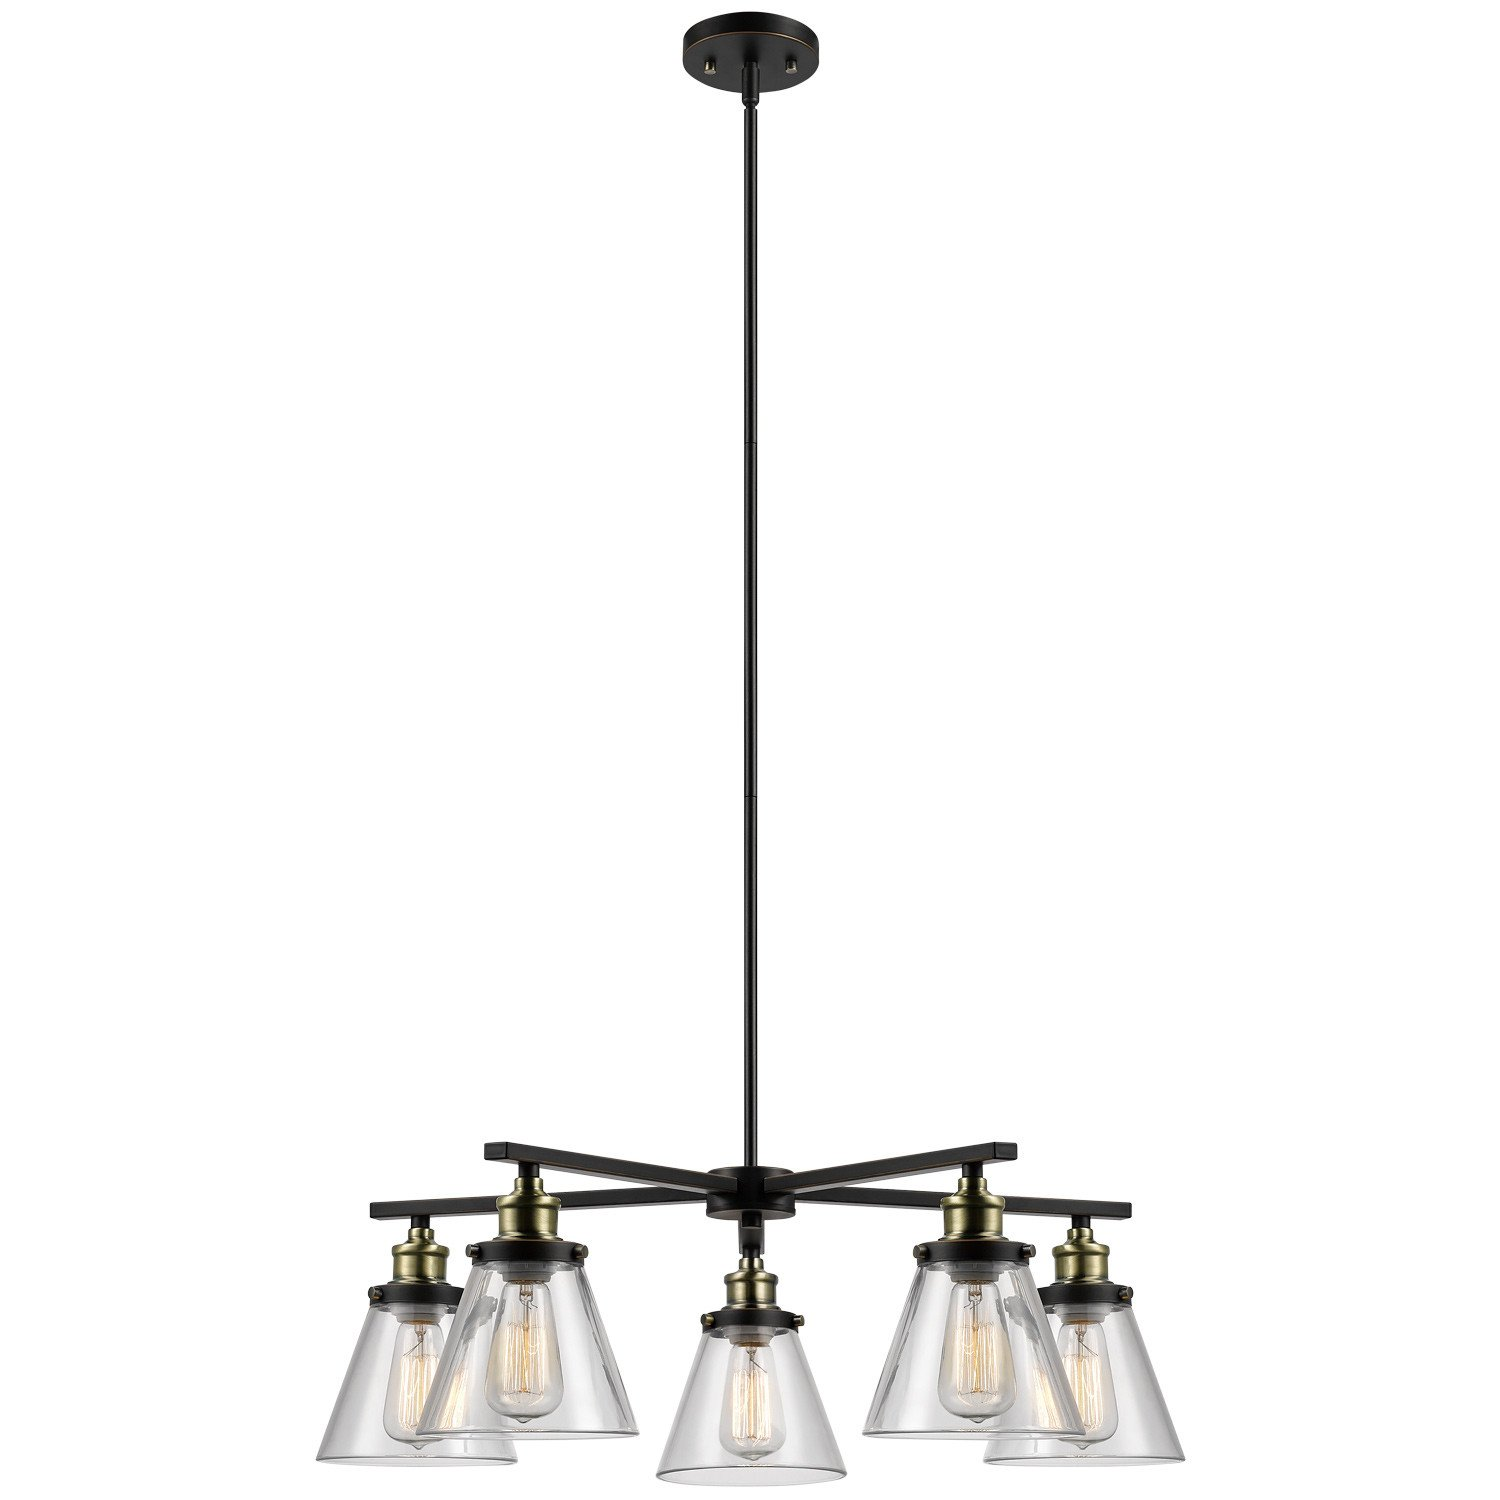 Globe Electric Shae 5-Light Vintage Edison Chandelier, Oil Rubbed Bronze Finish, Antique Brass Decorative Sockets, Clear Glass Shades, 65617 by Globe Electric